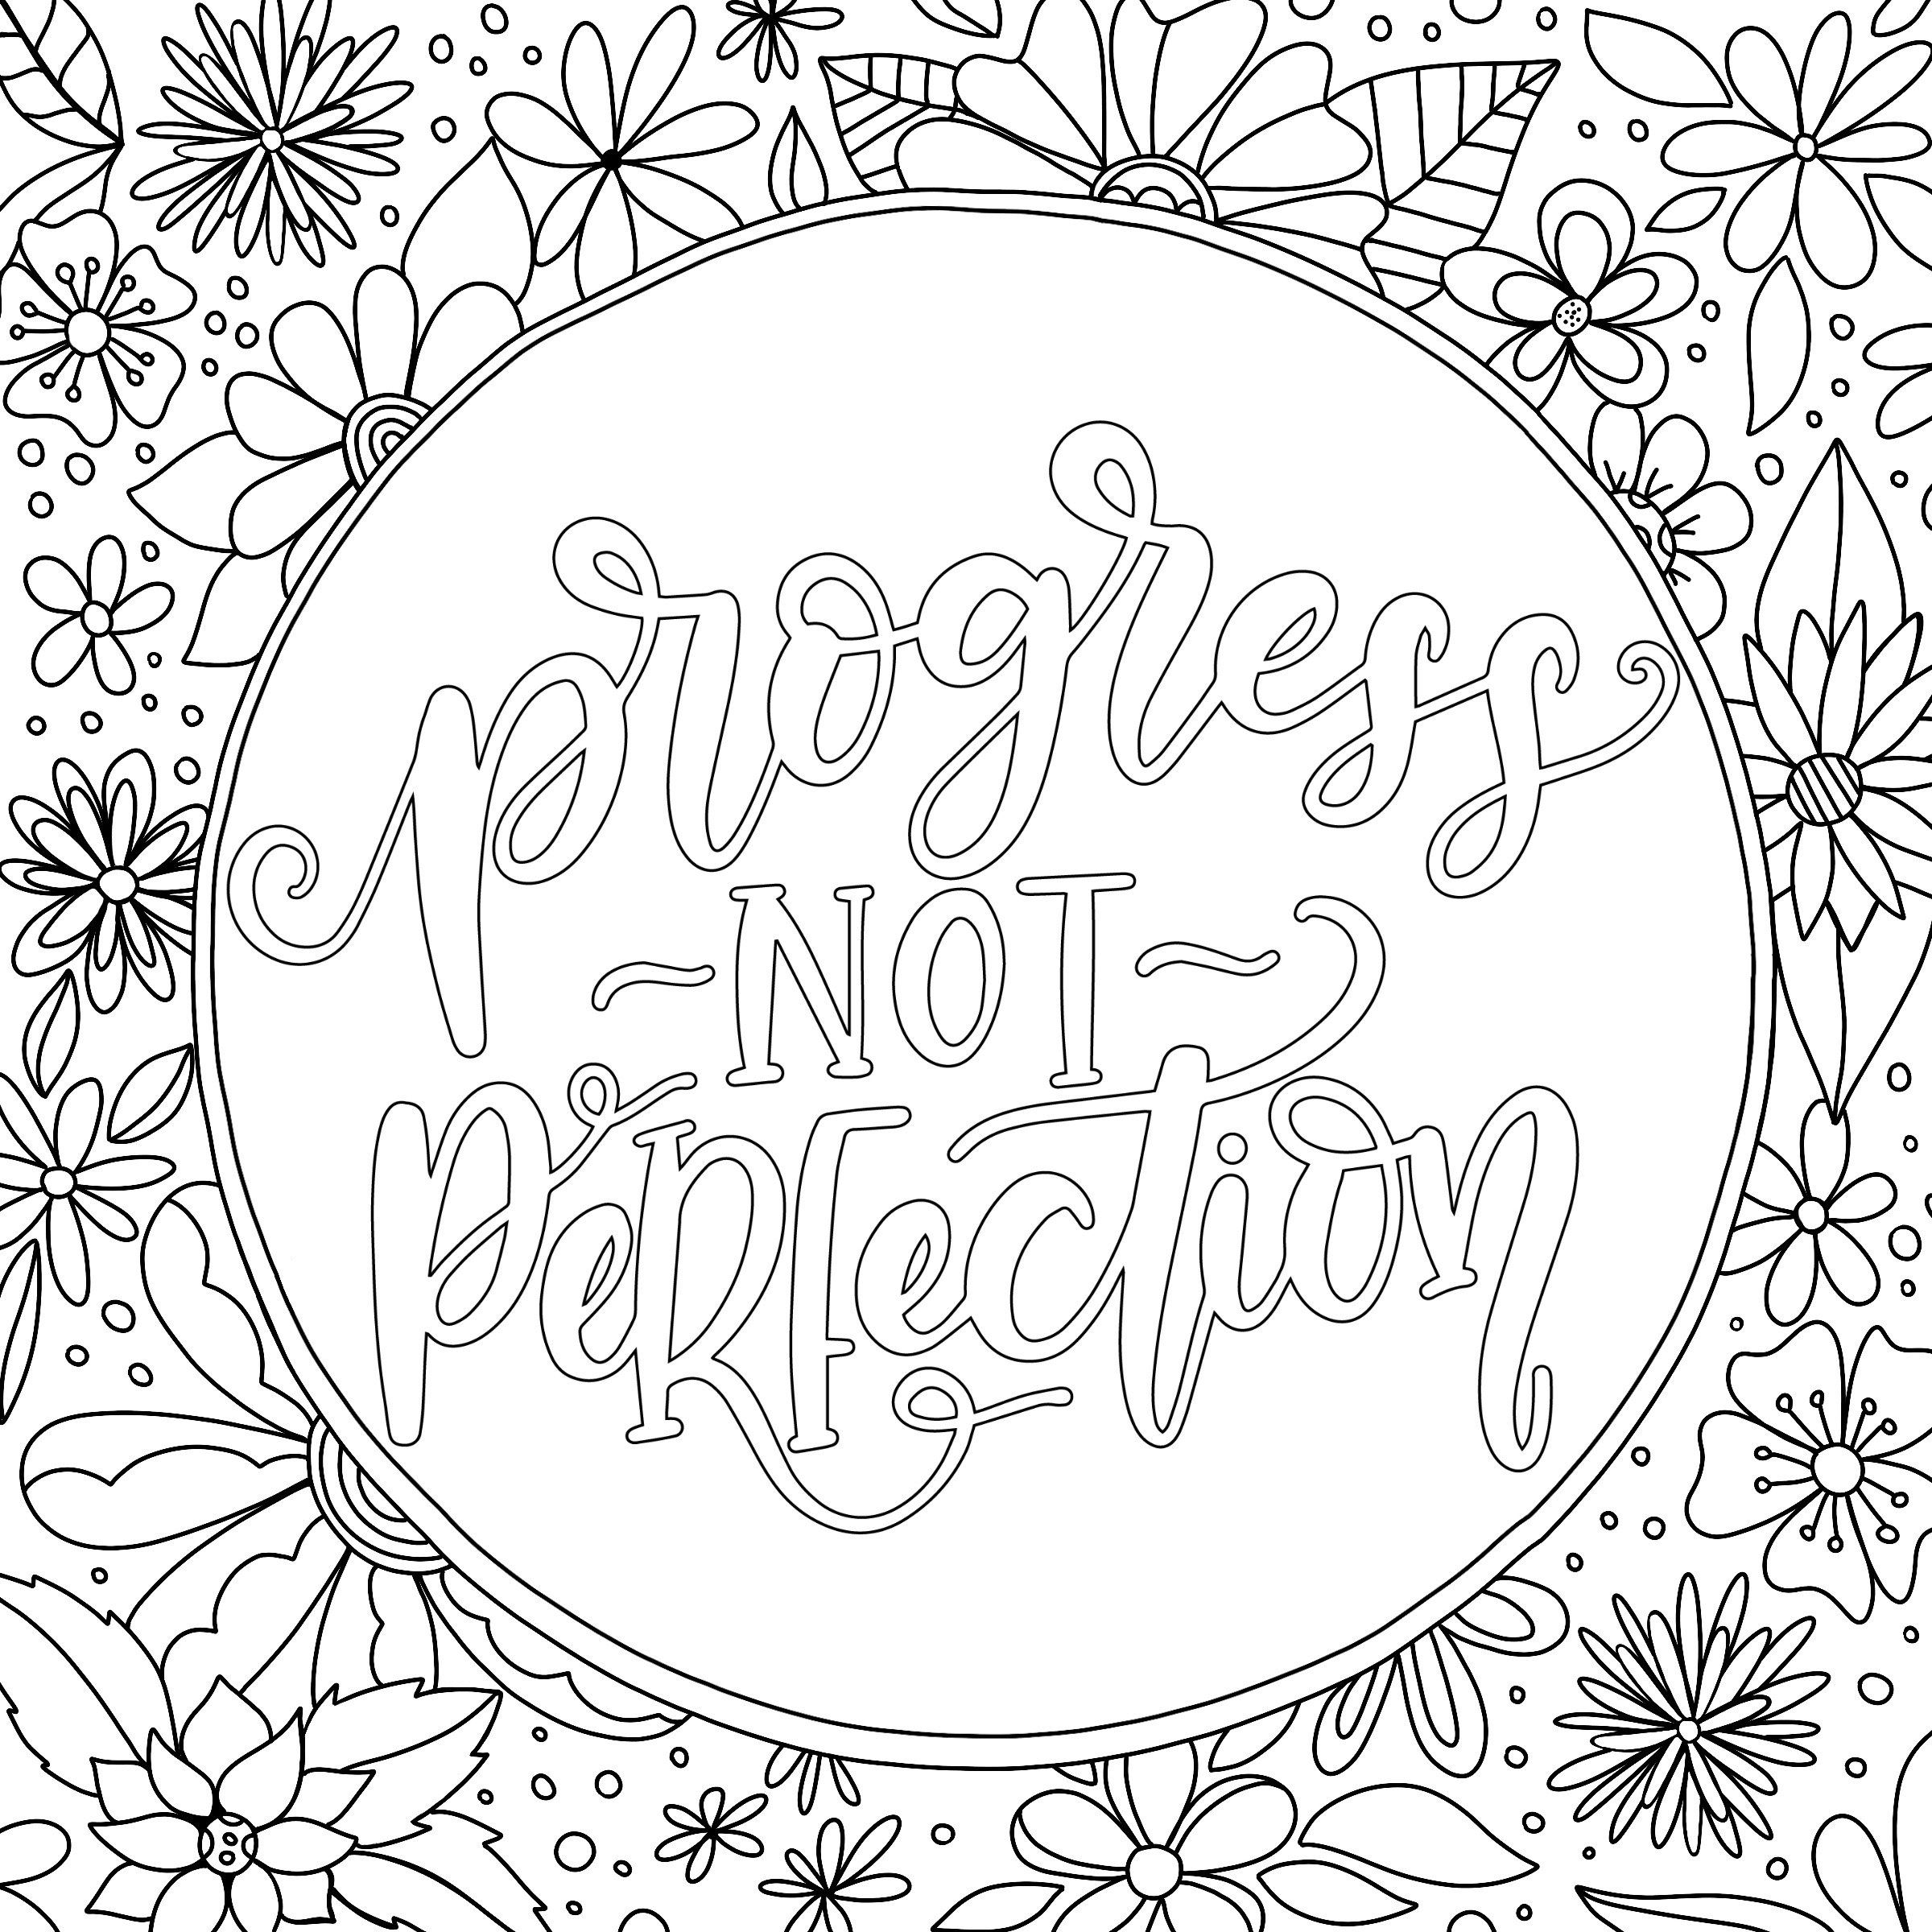 Pin on Color Me Quotes